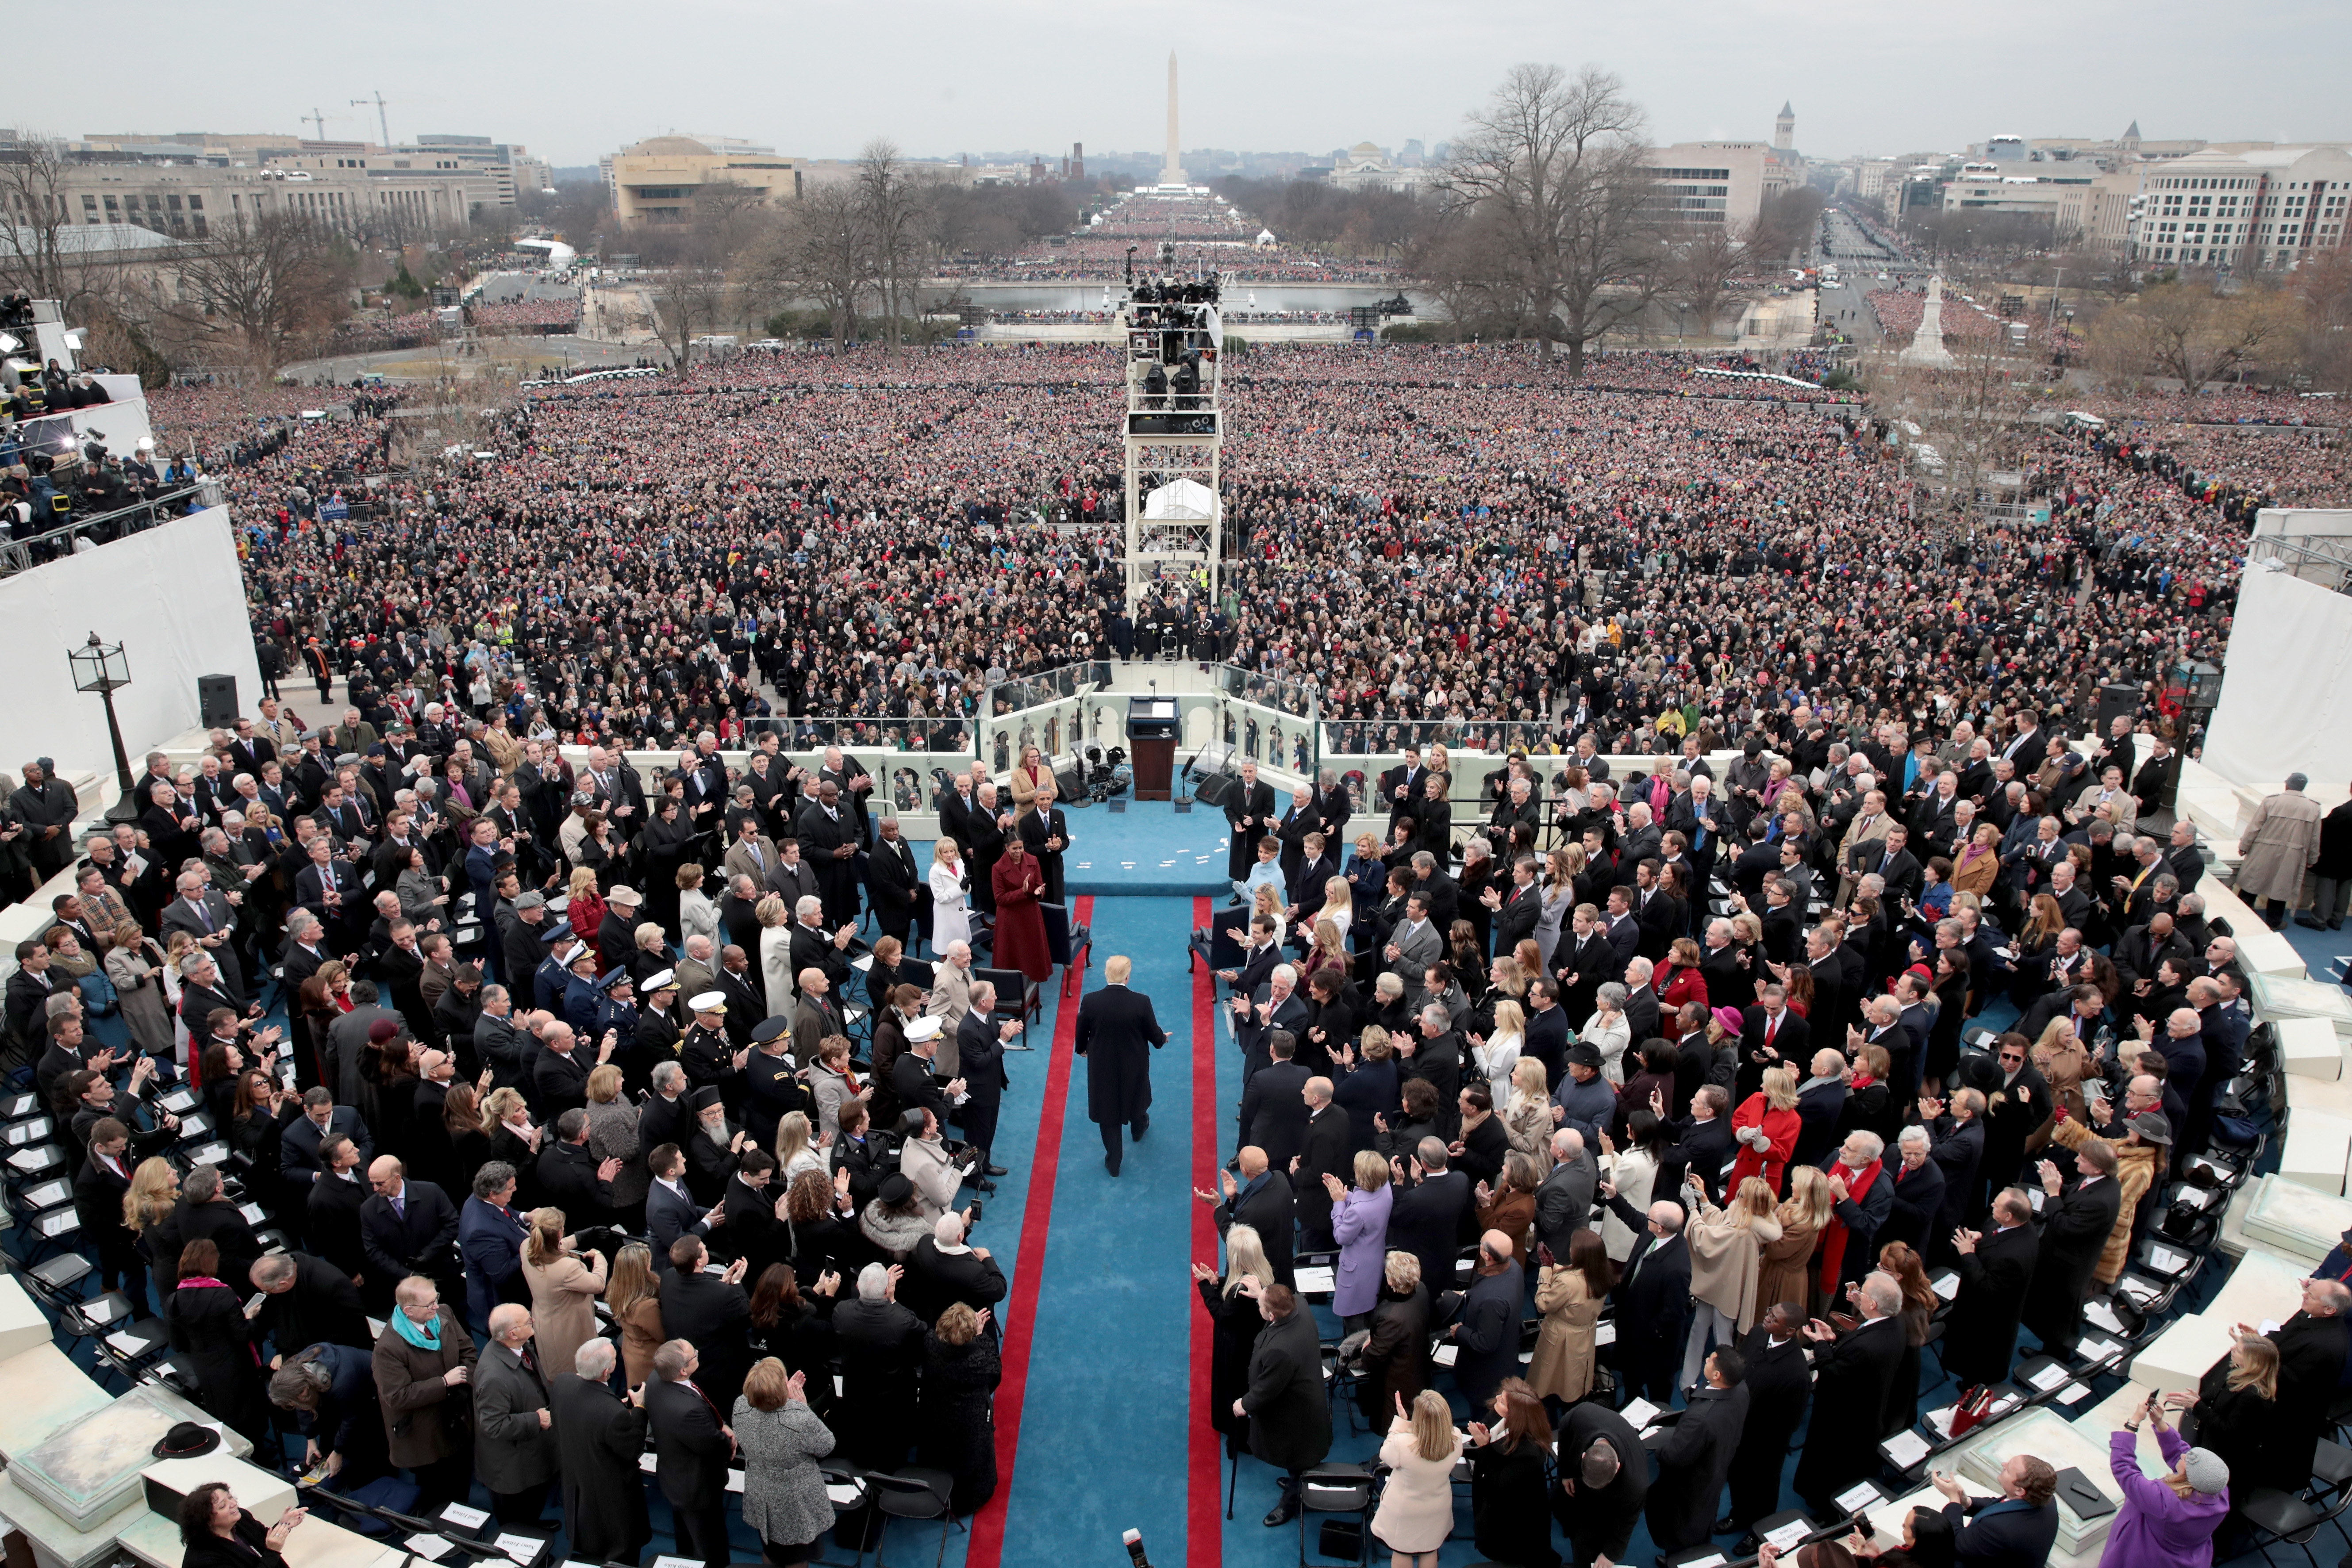 Photo Comparison of Trump's, Obama's Inaugurations